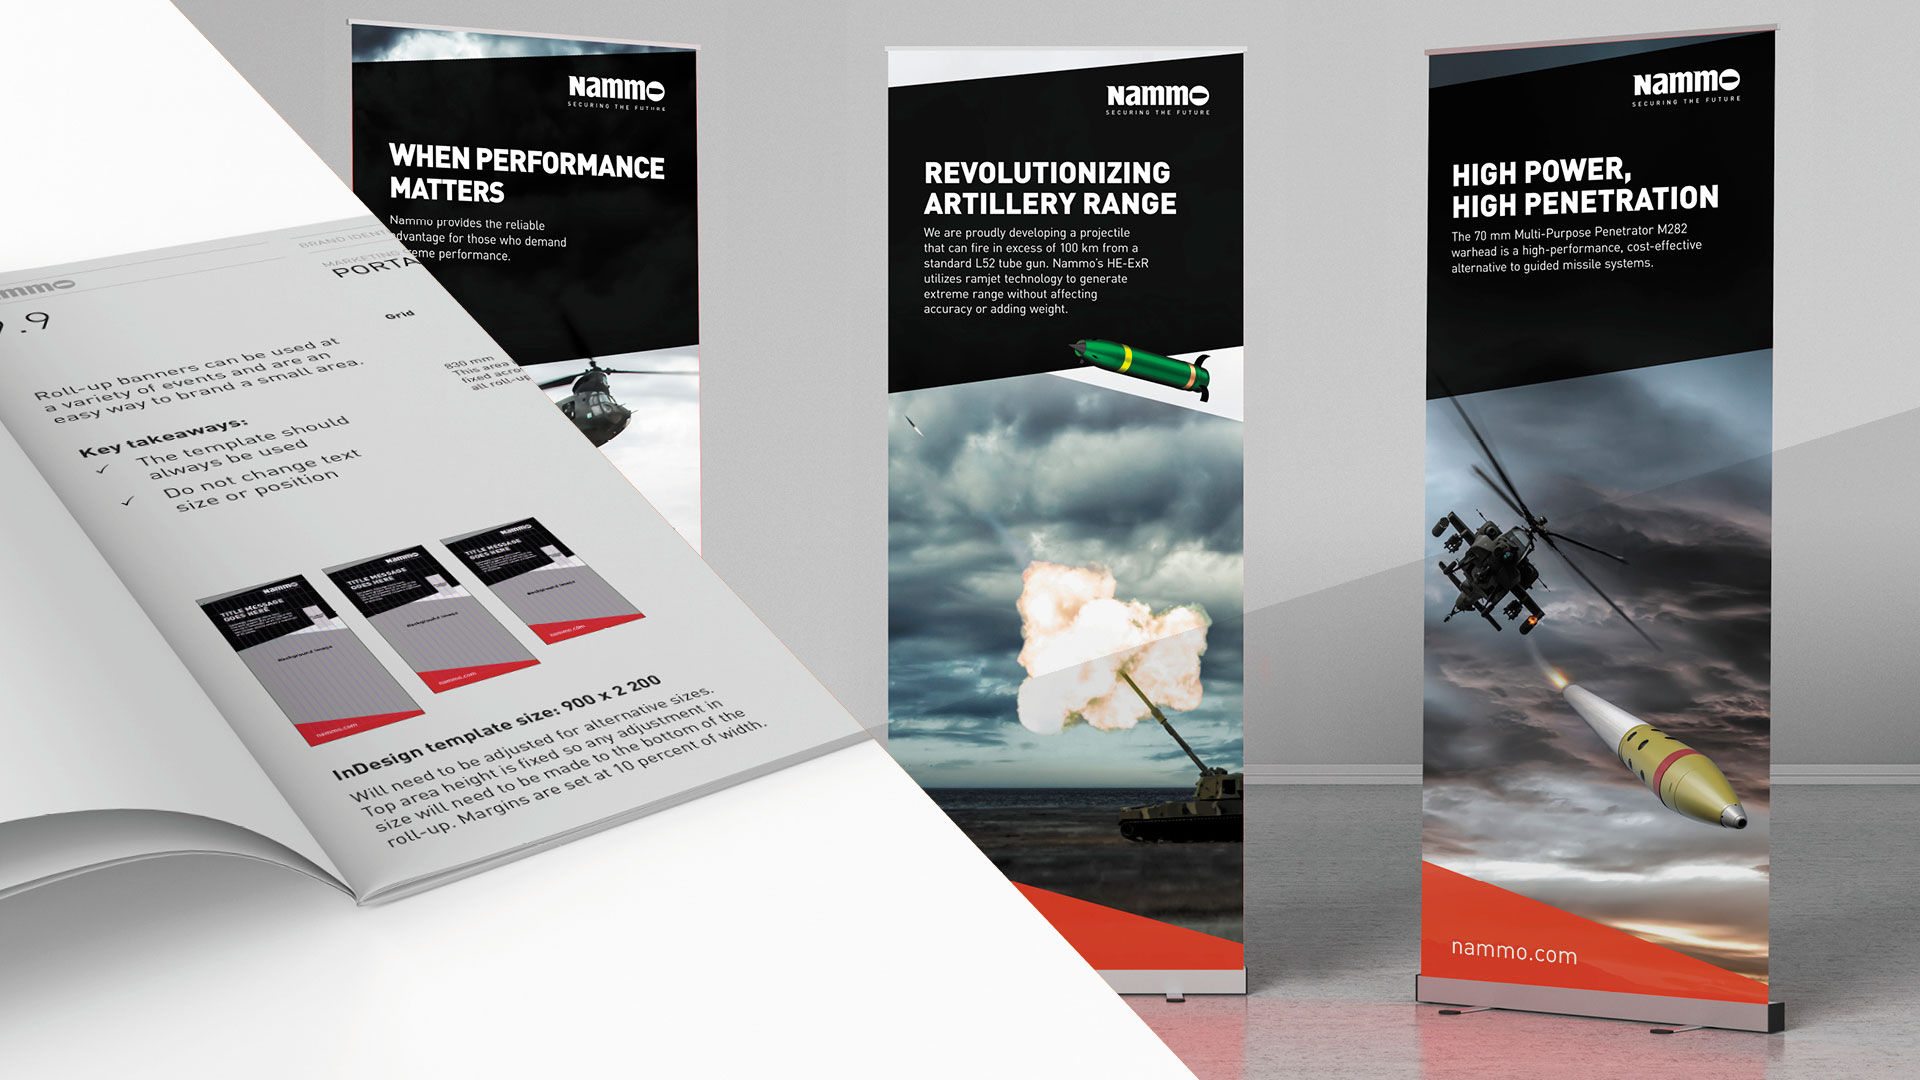 Nammo new brand roll-up banners